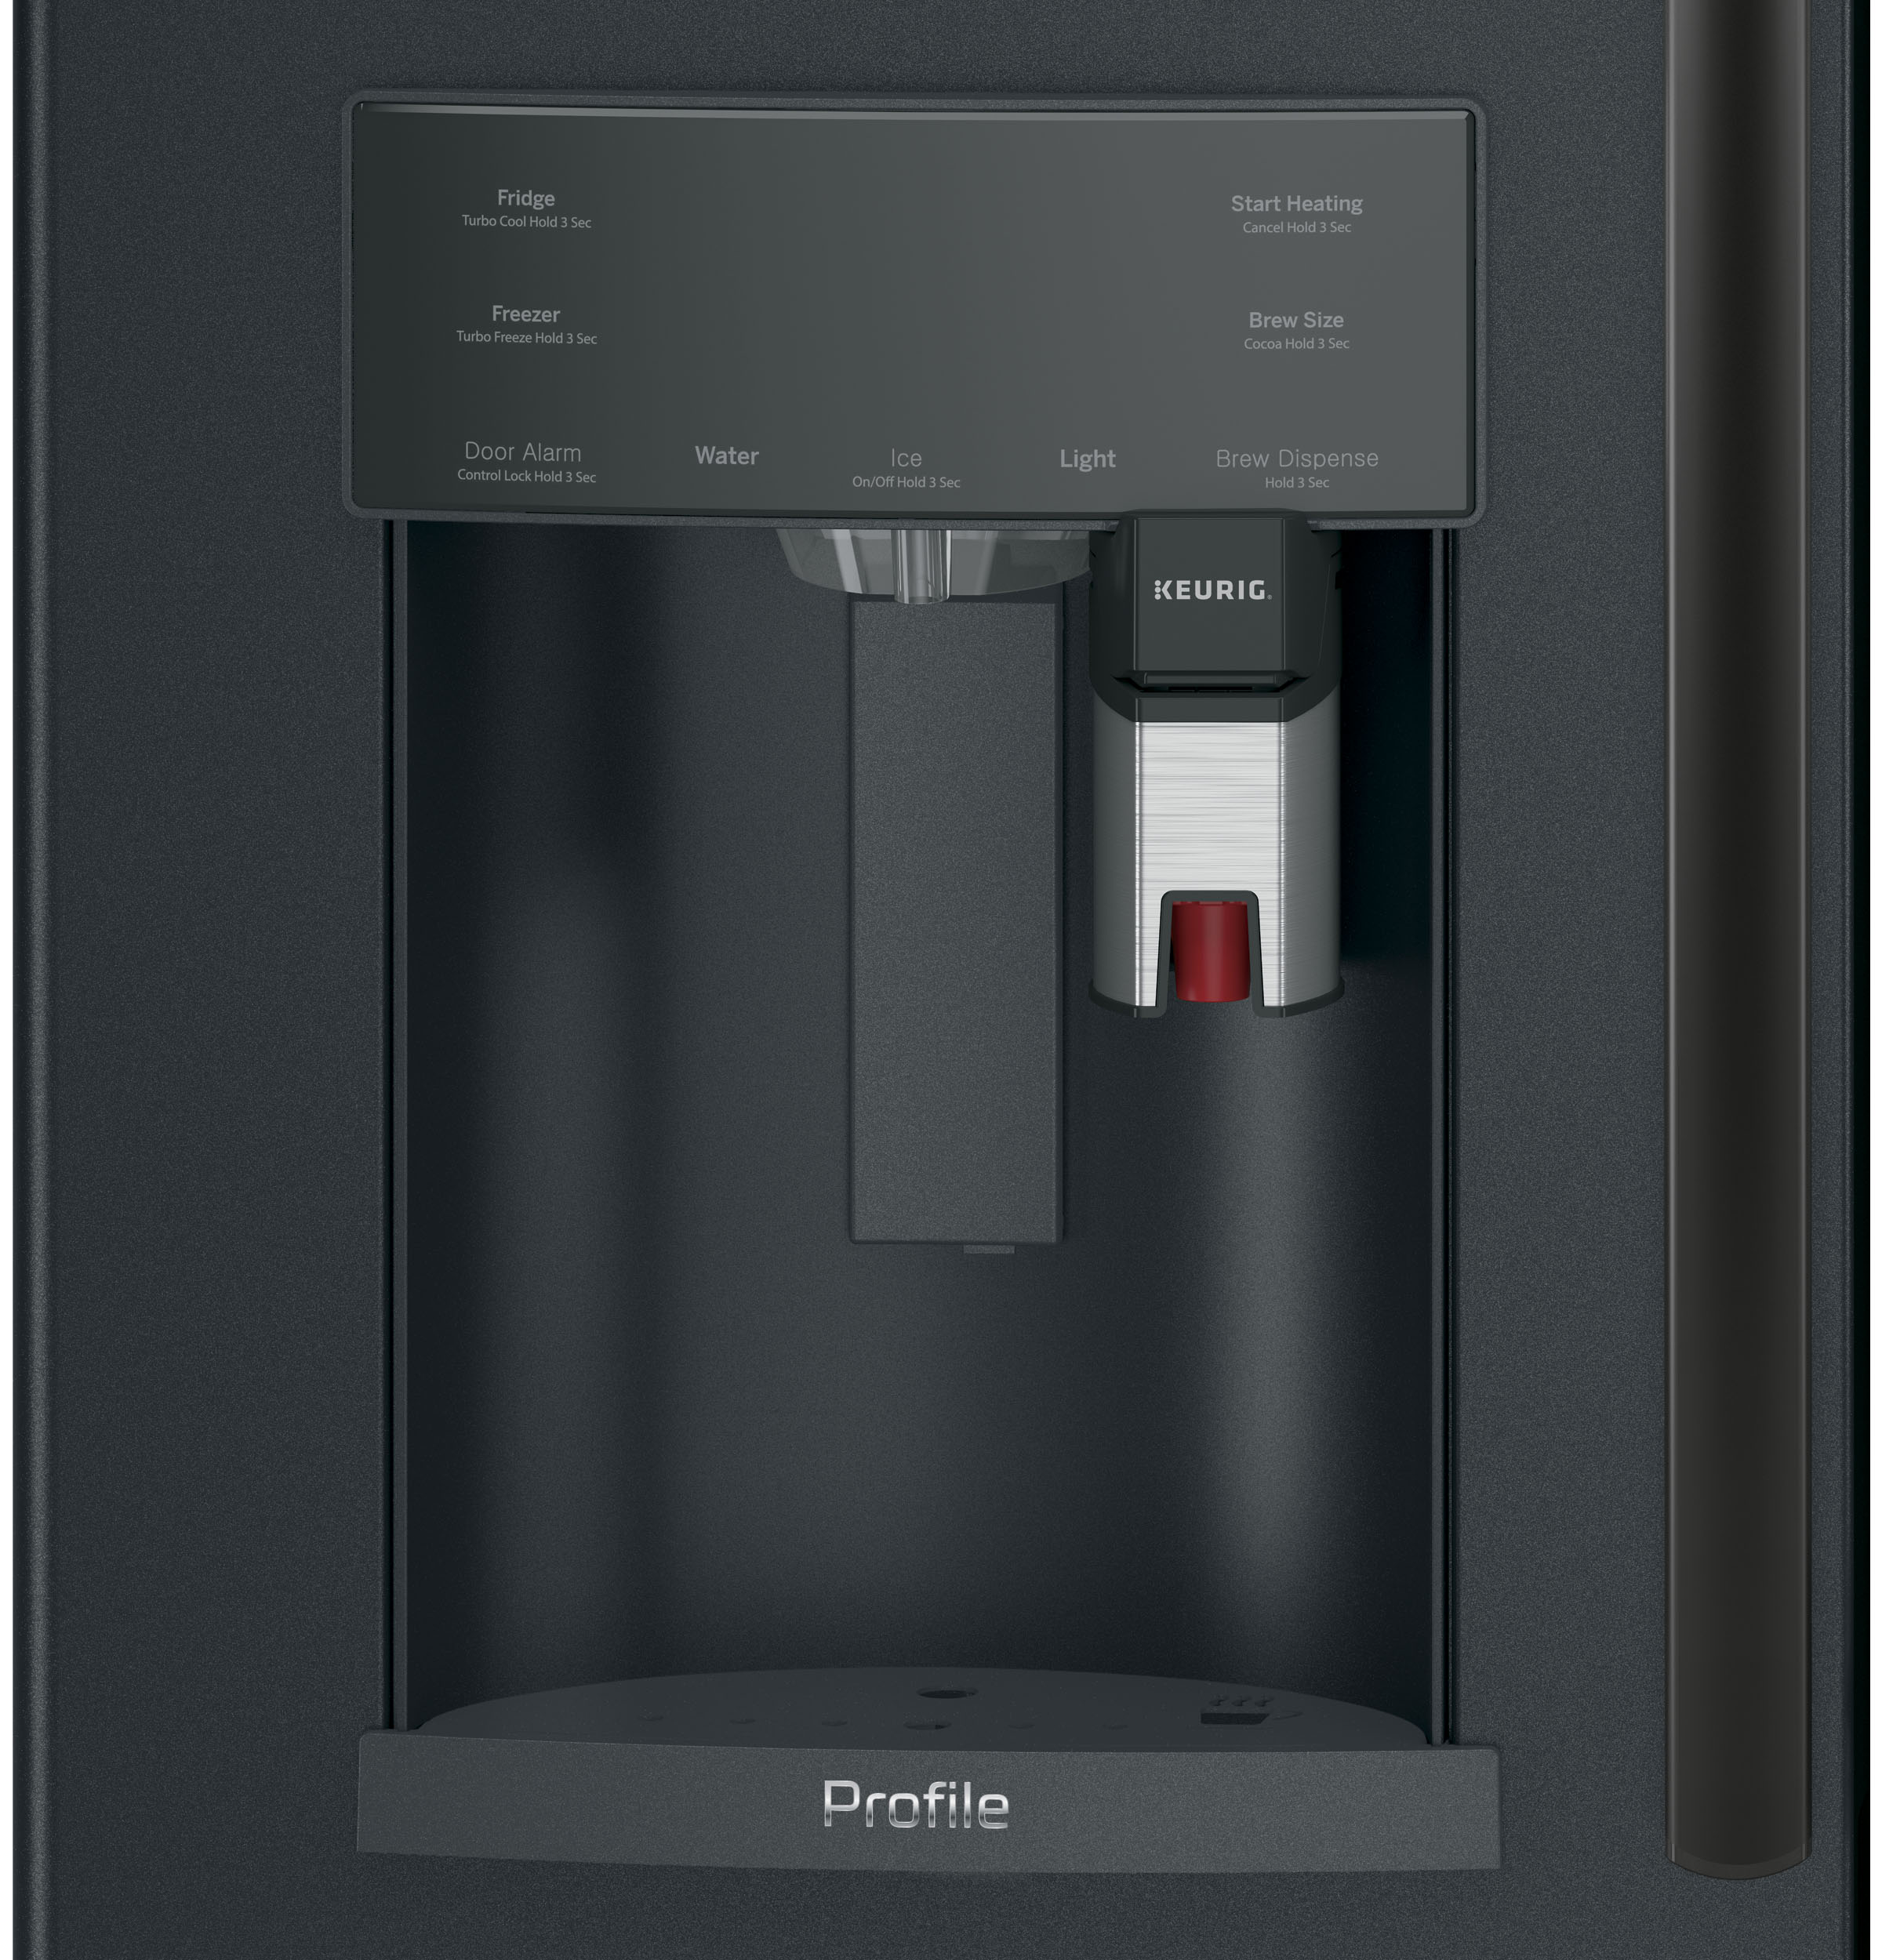 Model: PFE28PELDS   GE Profile™ Series ENERGY STAR® 27.8 Cu. Ft. French-Door Refrigerator with Keurig® K-Cup® Brewing System